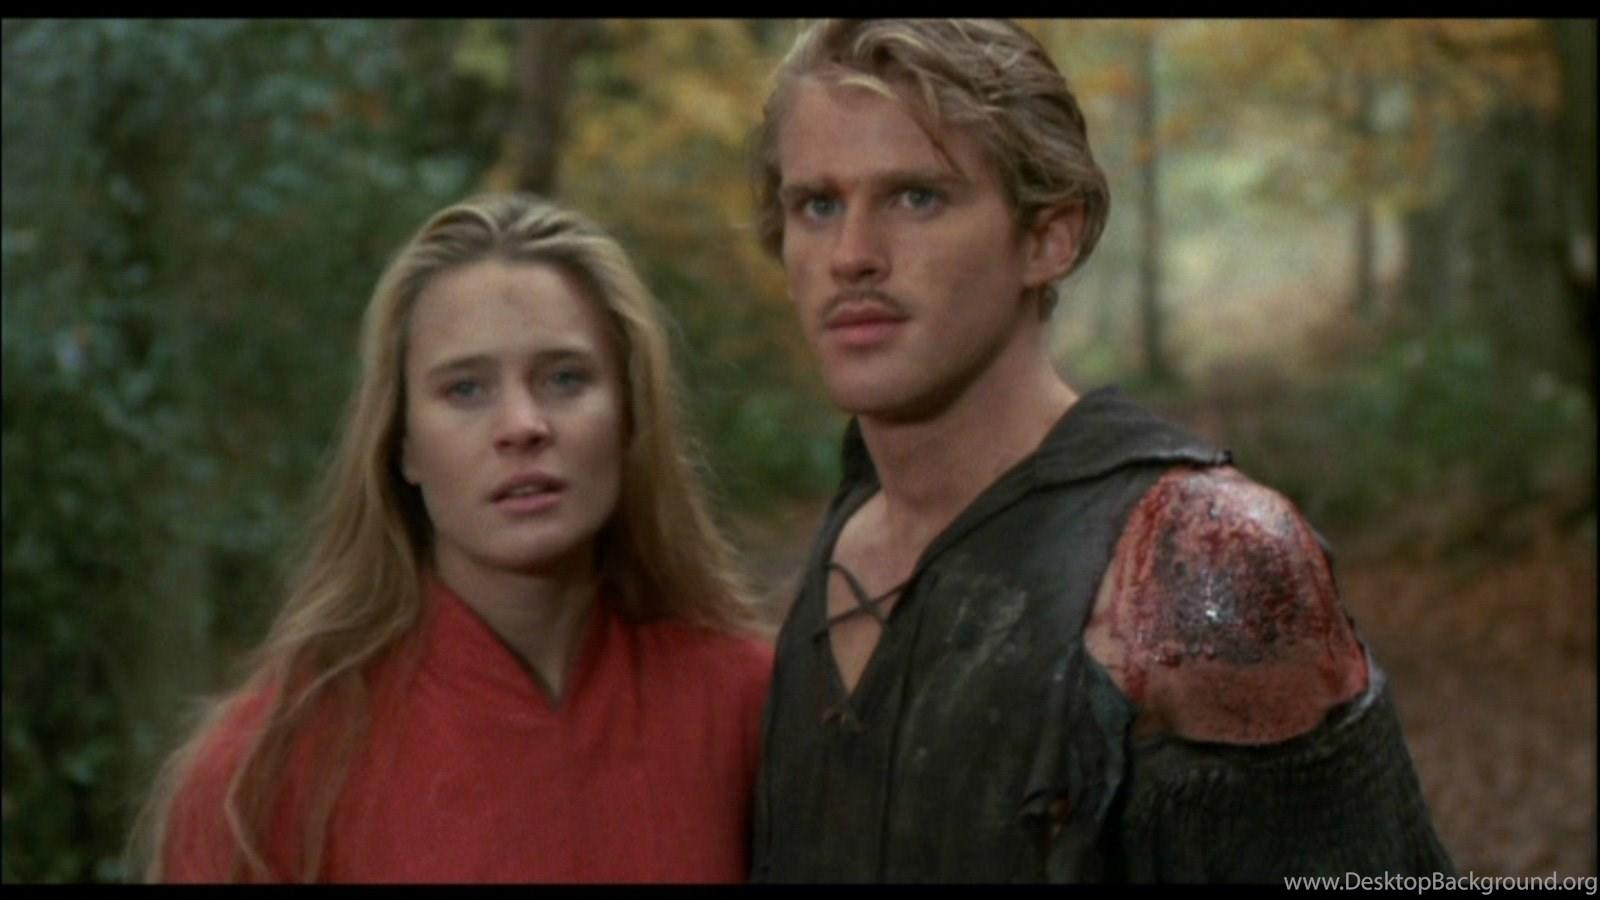 The Princess Bride Movie Wallpapers Desktop Backgrounds